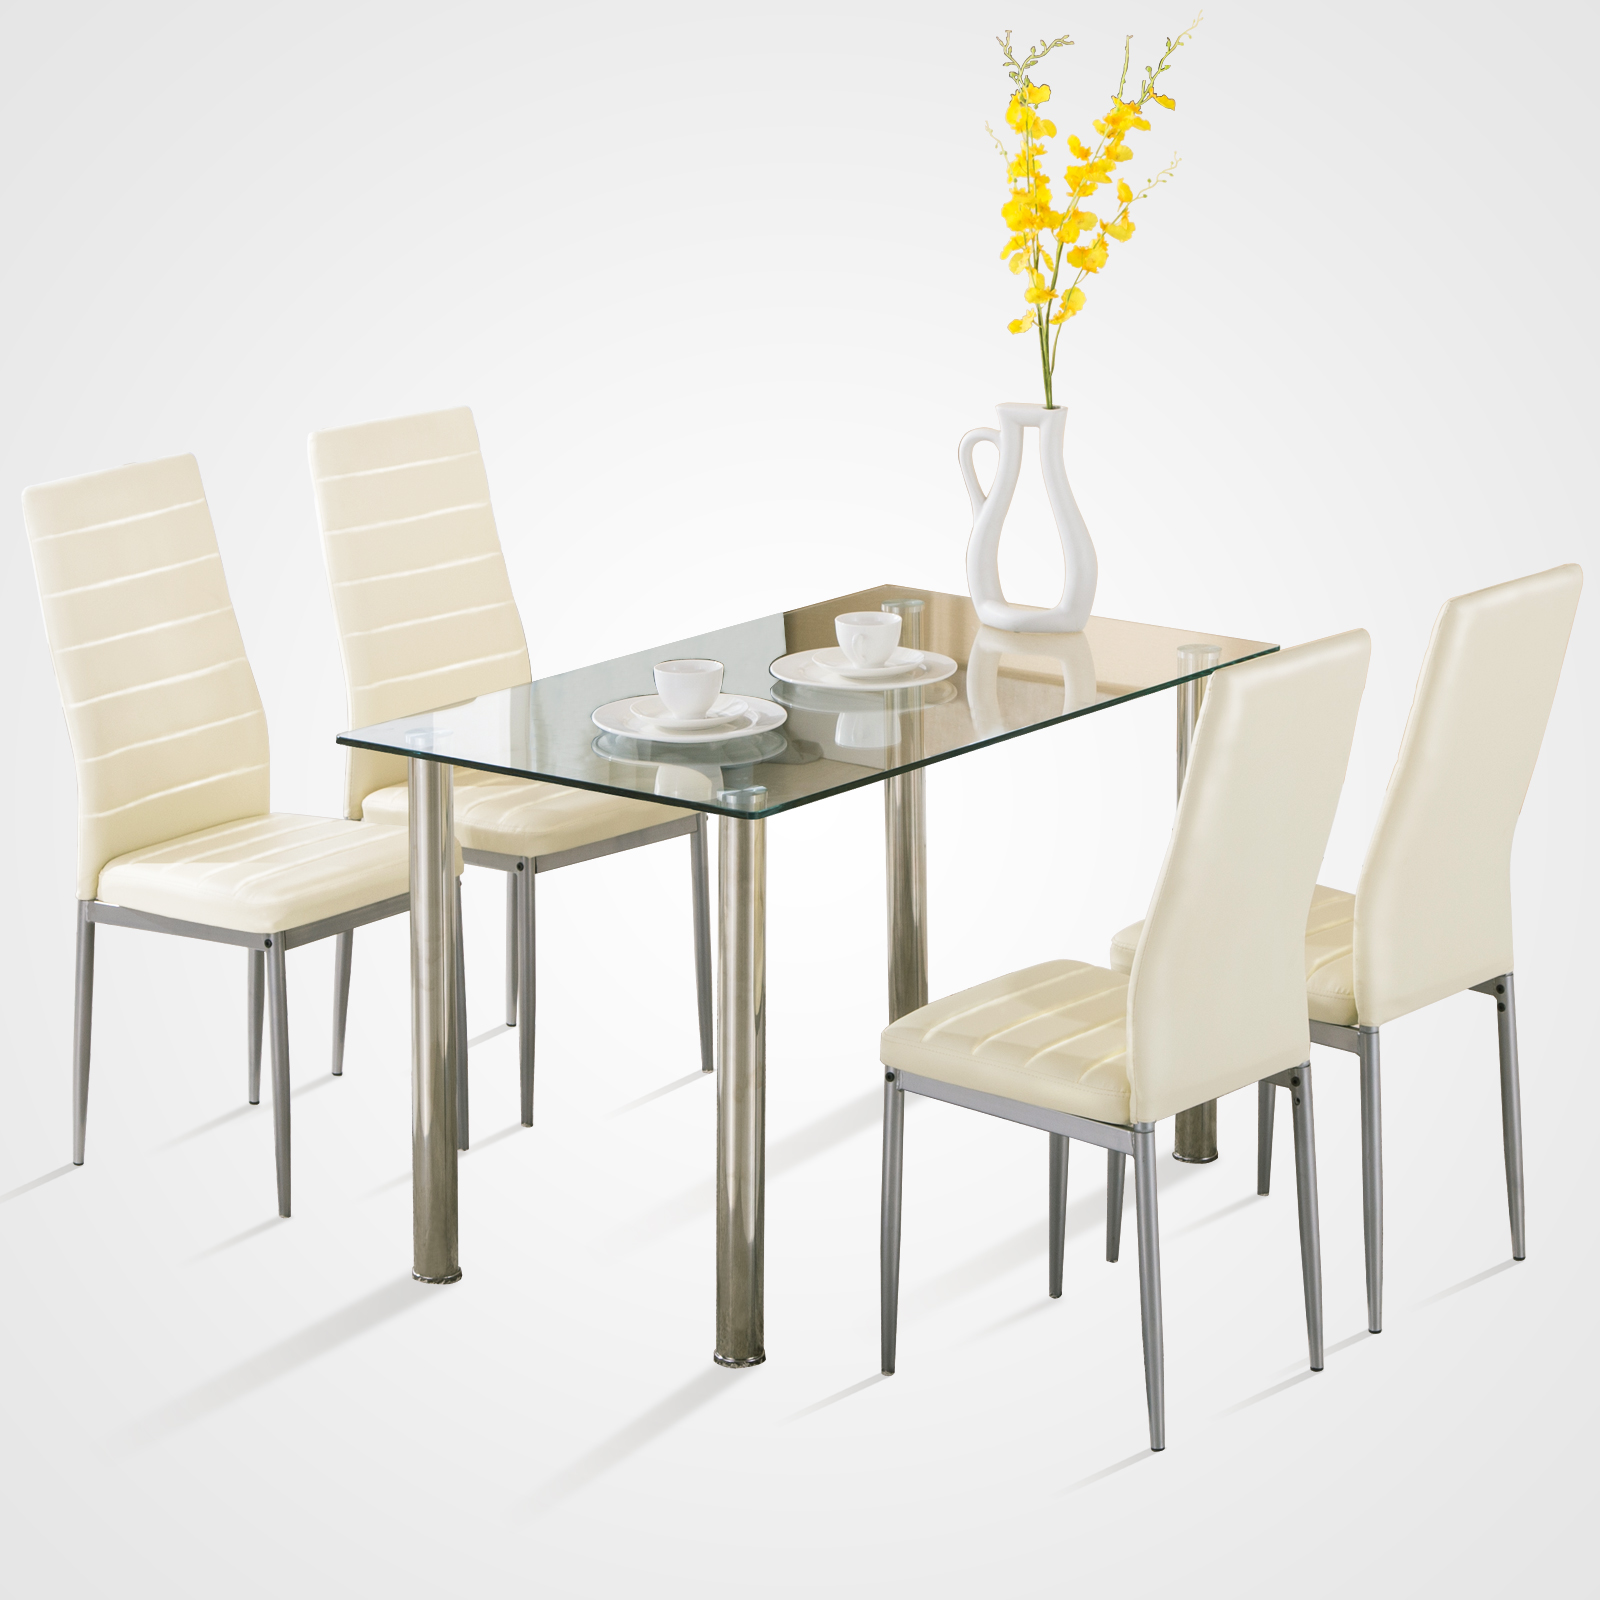 5 Piece Dining Room Sets Amazon Com: 5 Piece Dining Table Set W/4 Chairs Glass Metal Kitchen